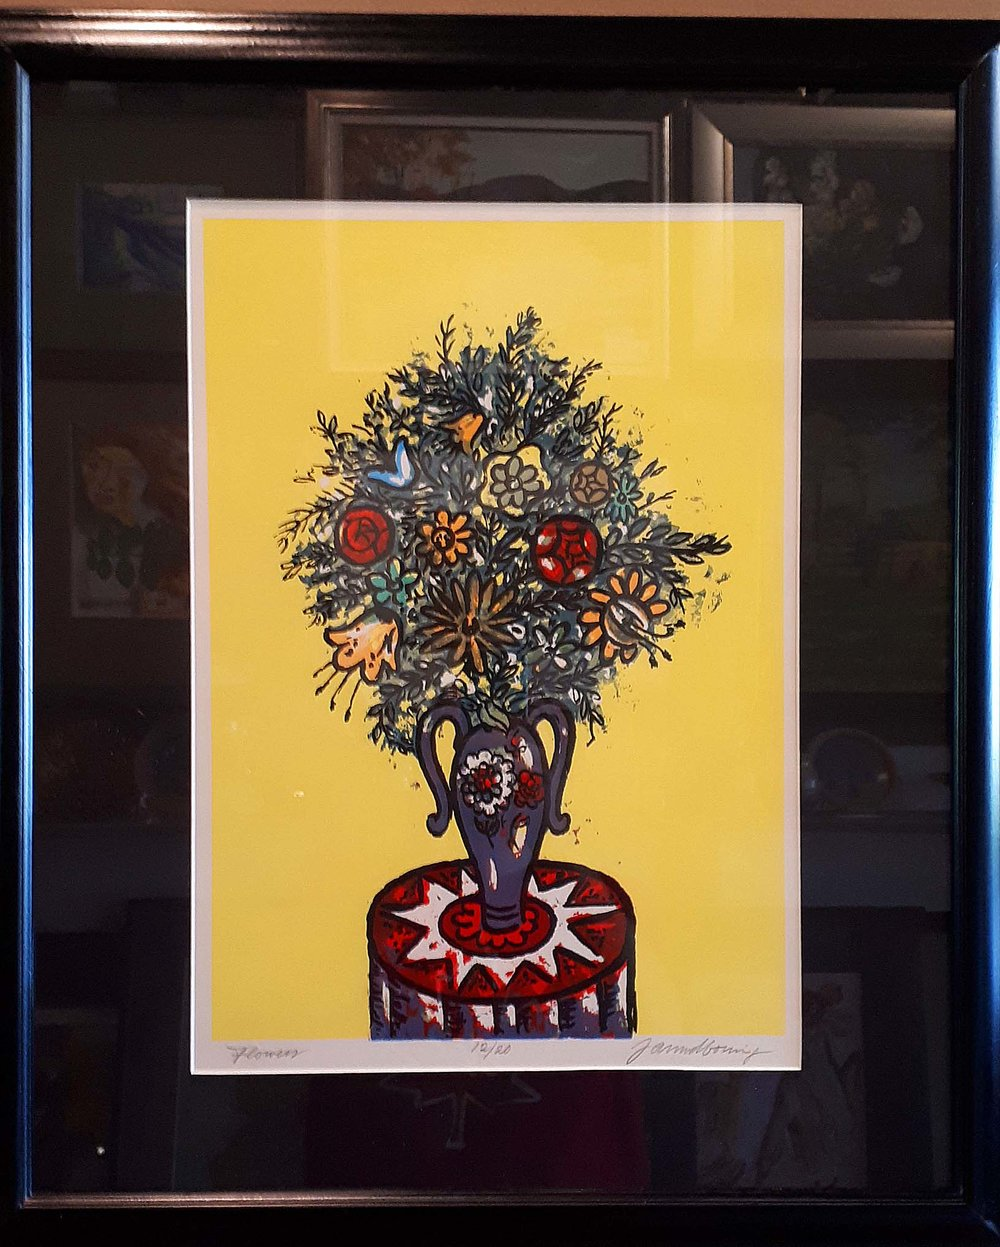 "Jan Boning MSA, Original Print 12/20, ""Flowers"", Size: 23 x 29, Price: 250.00"